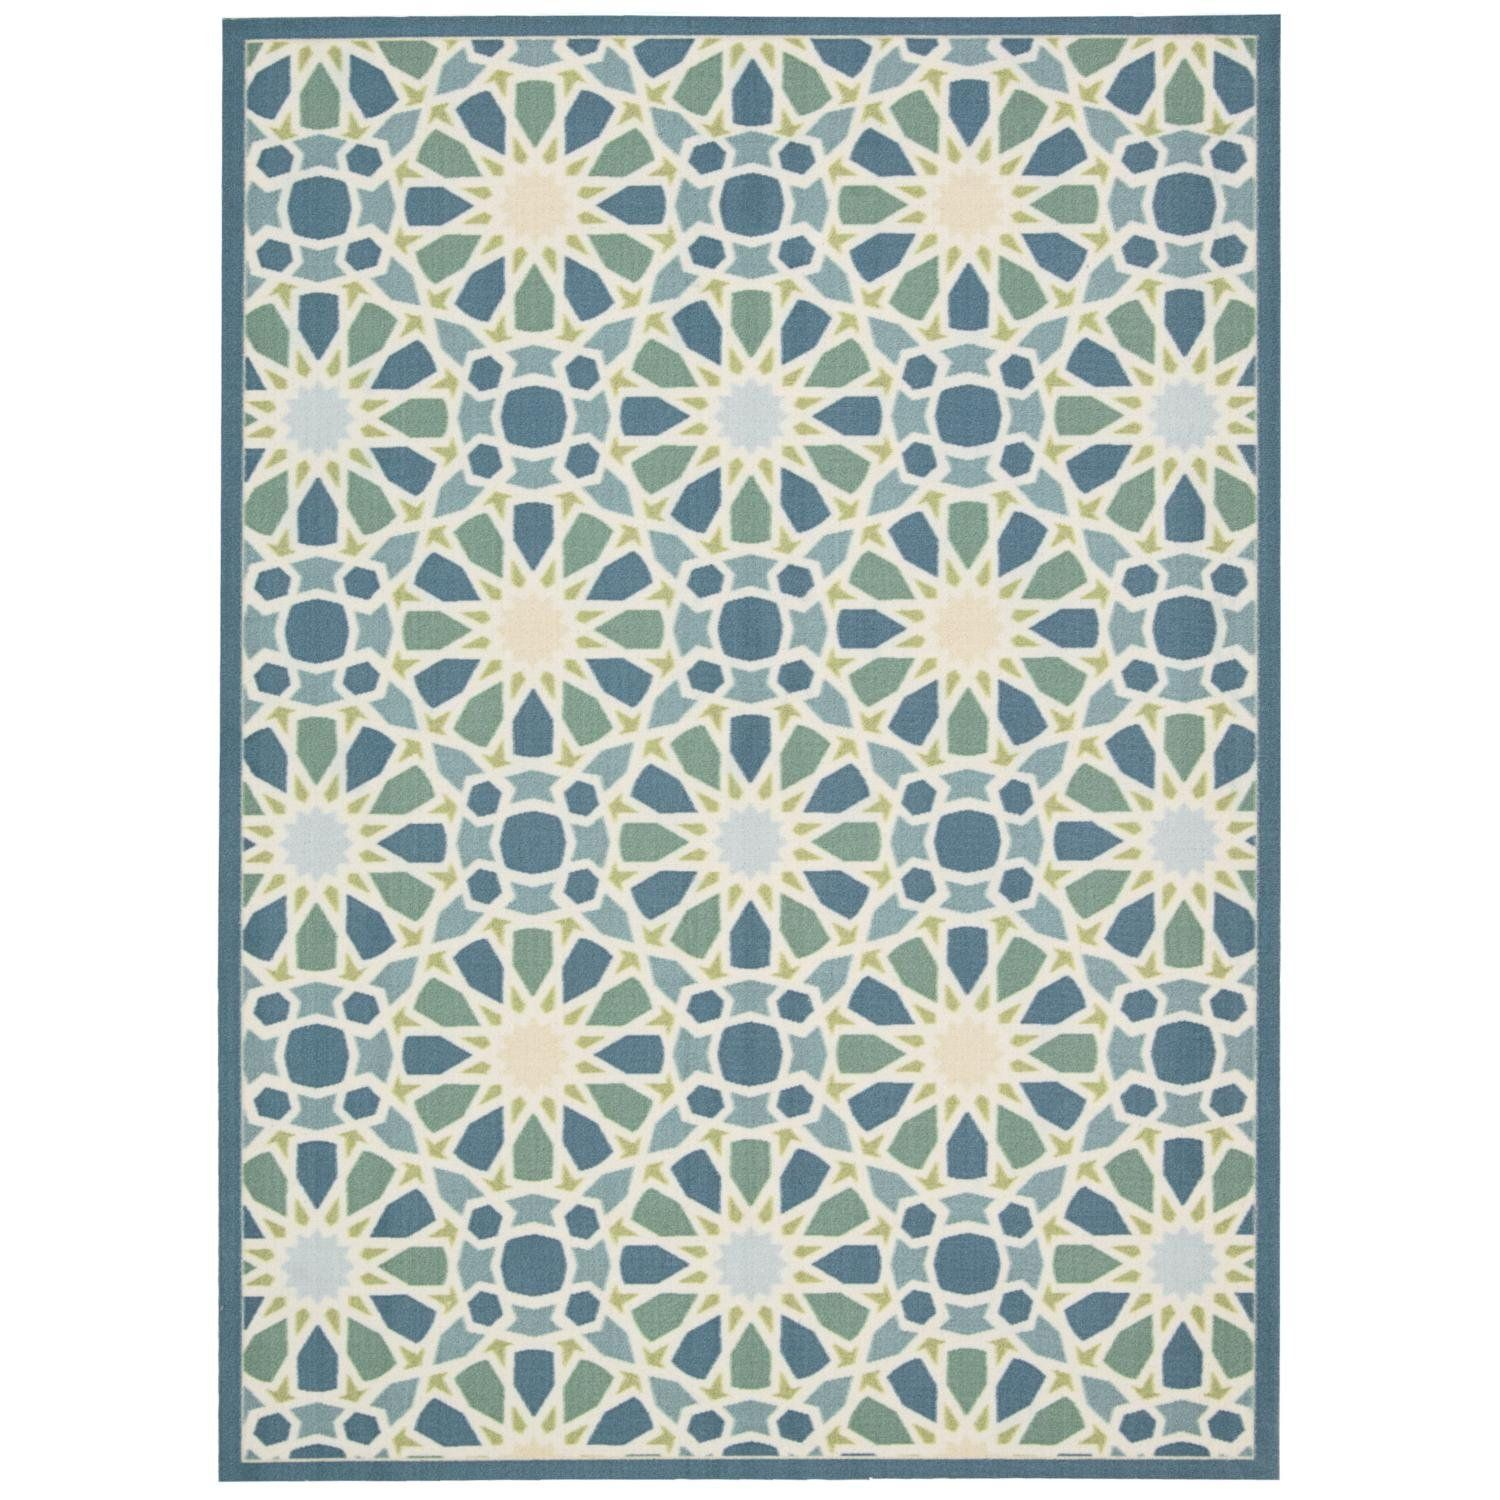 10×13 Area Rugs Floral Design | Rugs Carpet Ideas